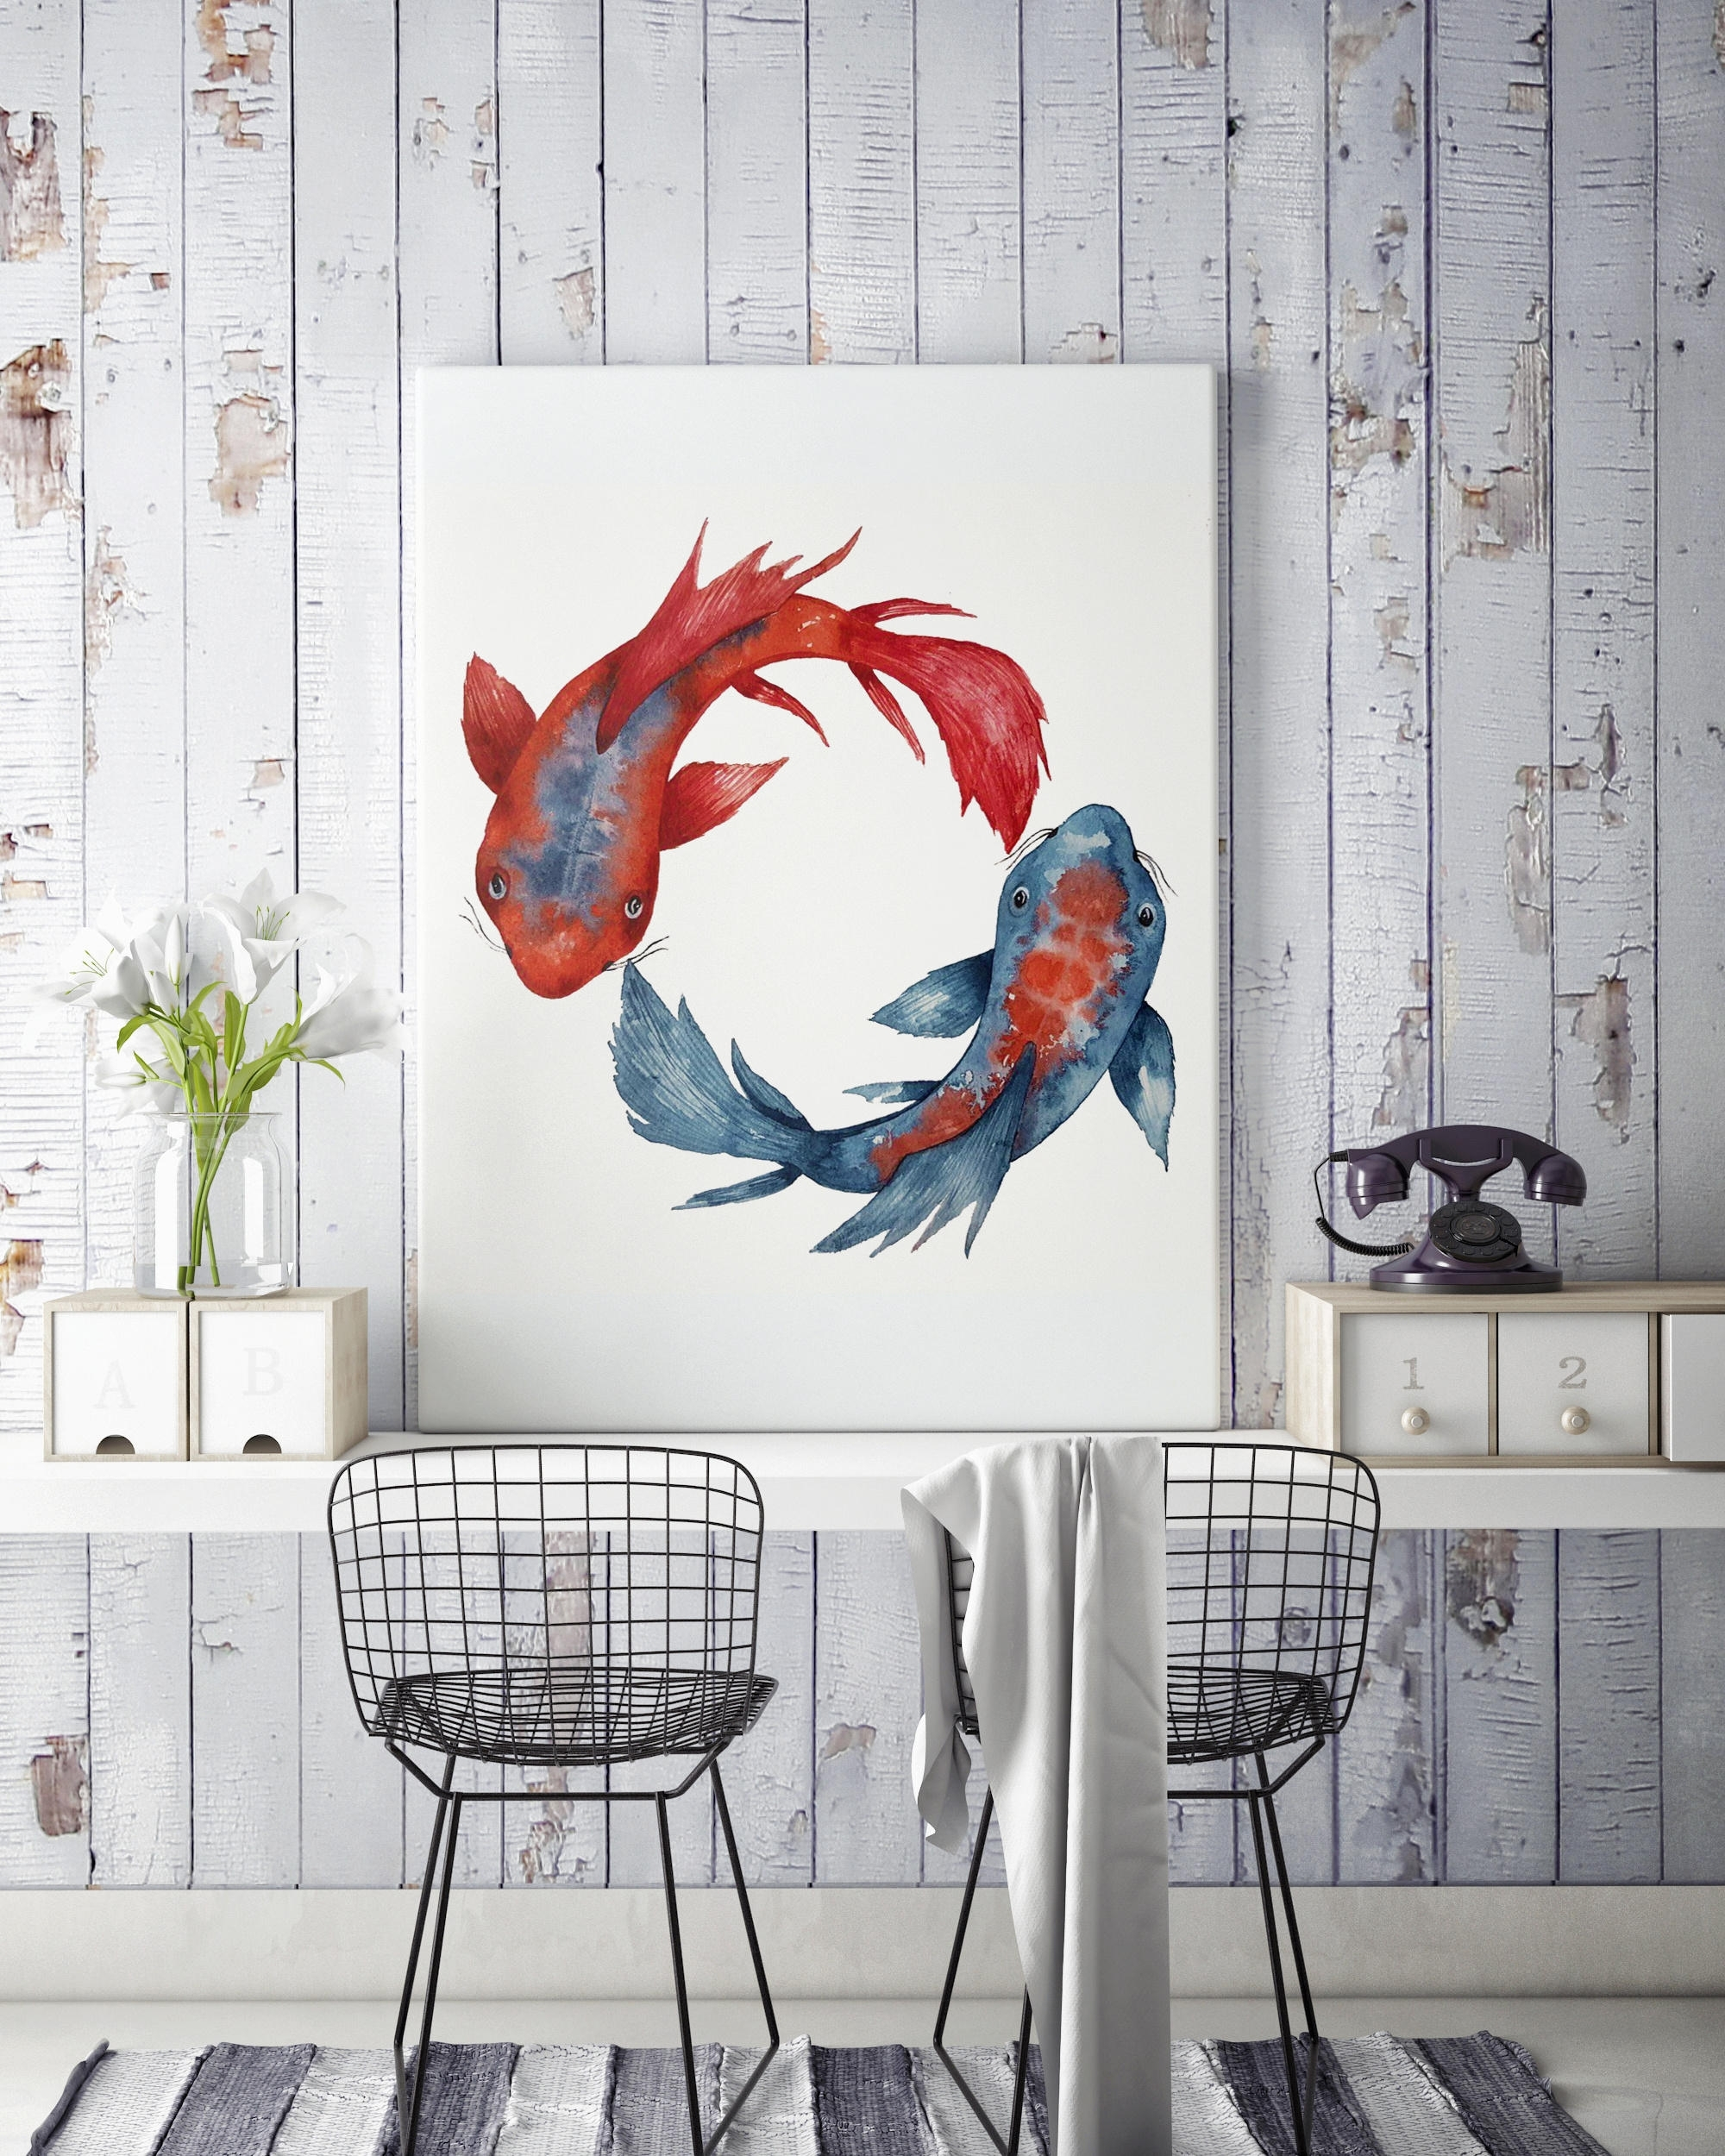 Yin Yang Koi Fish | Framed Canvas | Wall Decor | Watercolor Painting Intended For Fish Painting Wall Art (Gallery 18 of 20)